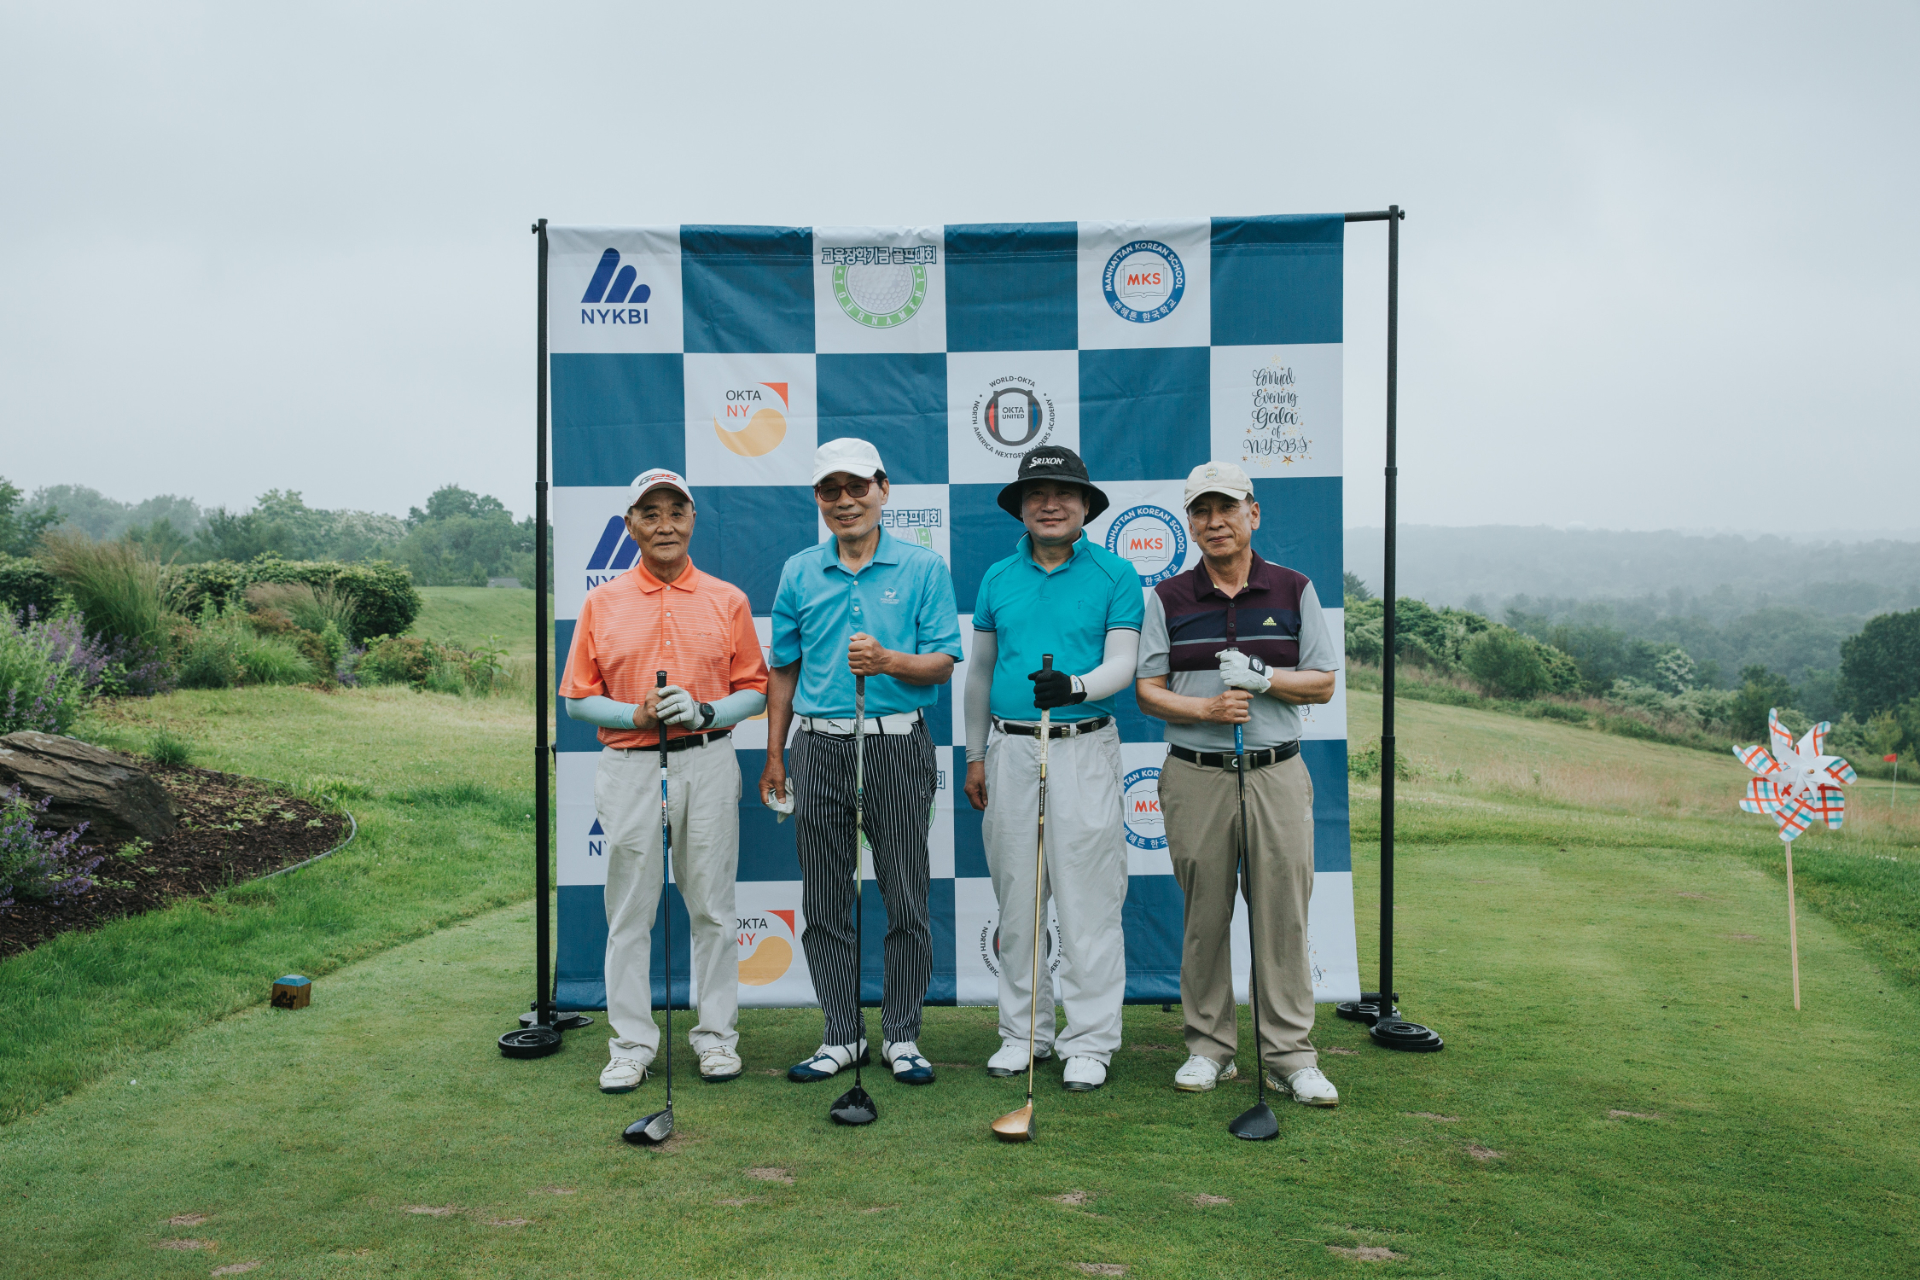 https://nykbi.com/new/wp-content/uploads/2019/07/190619-Scholarship-Fundraising-Golf-Tournament-021.jpg